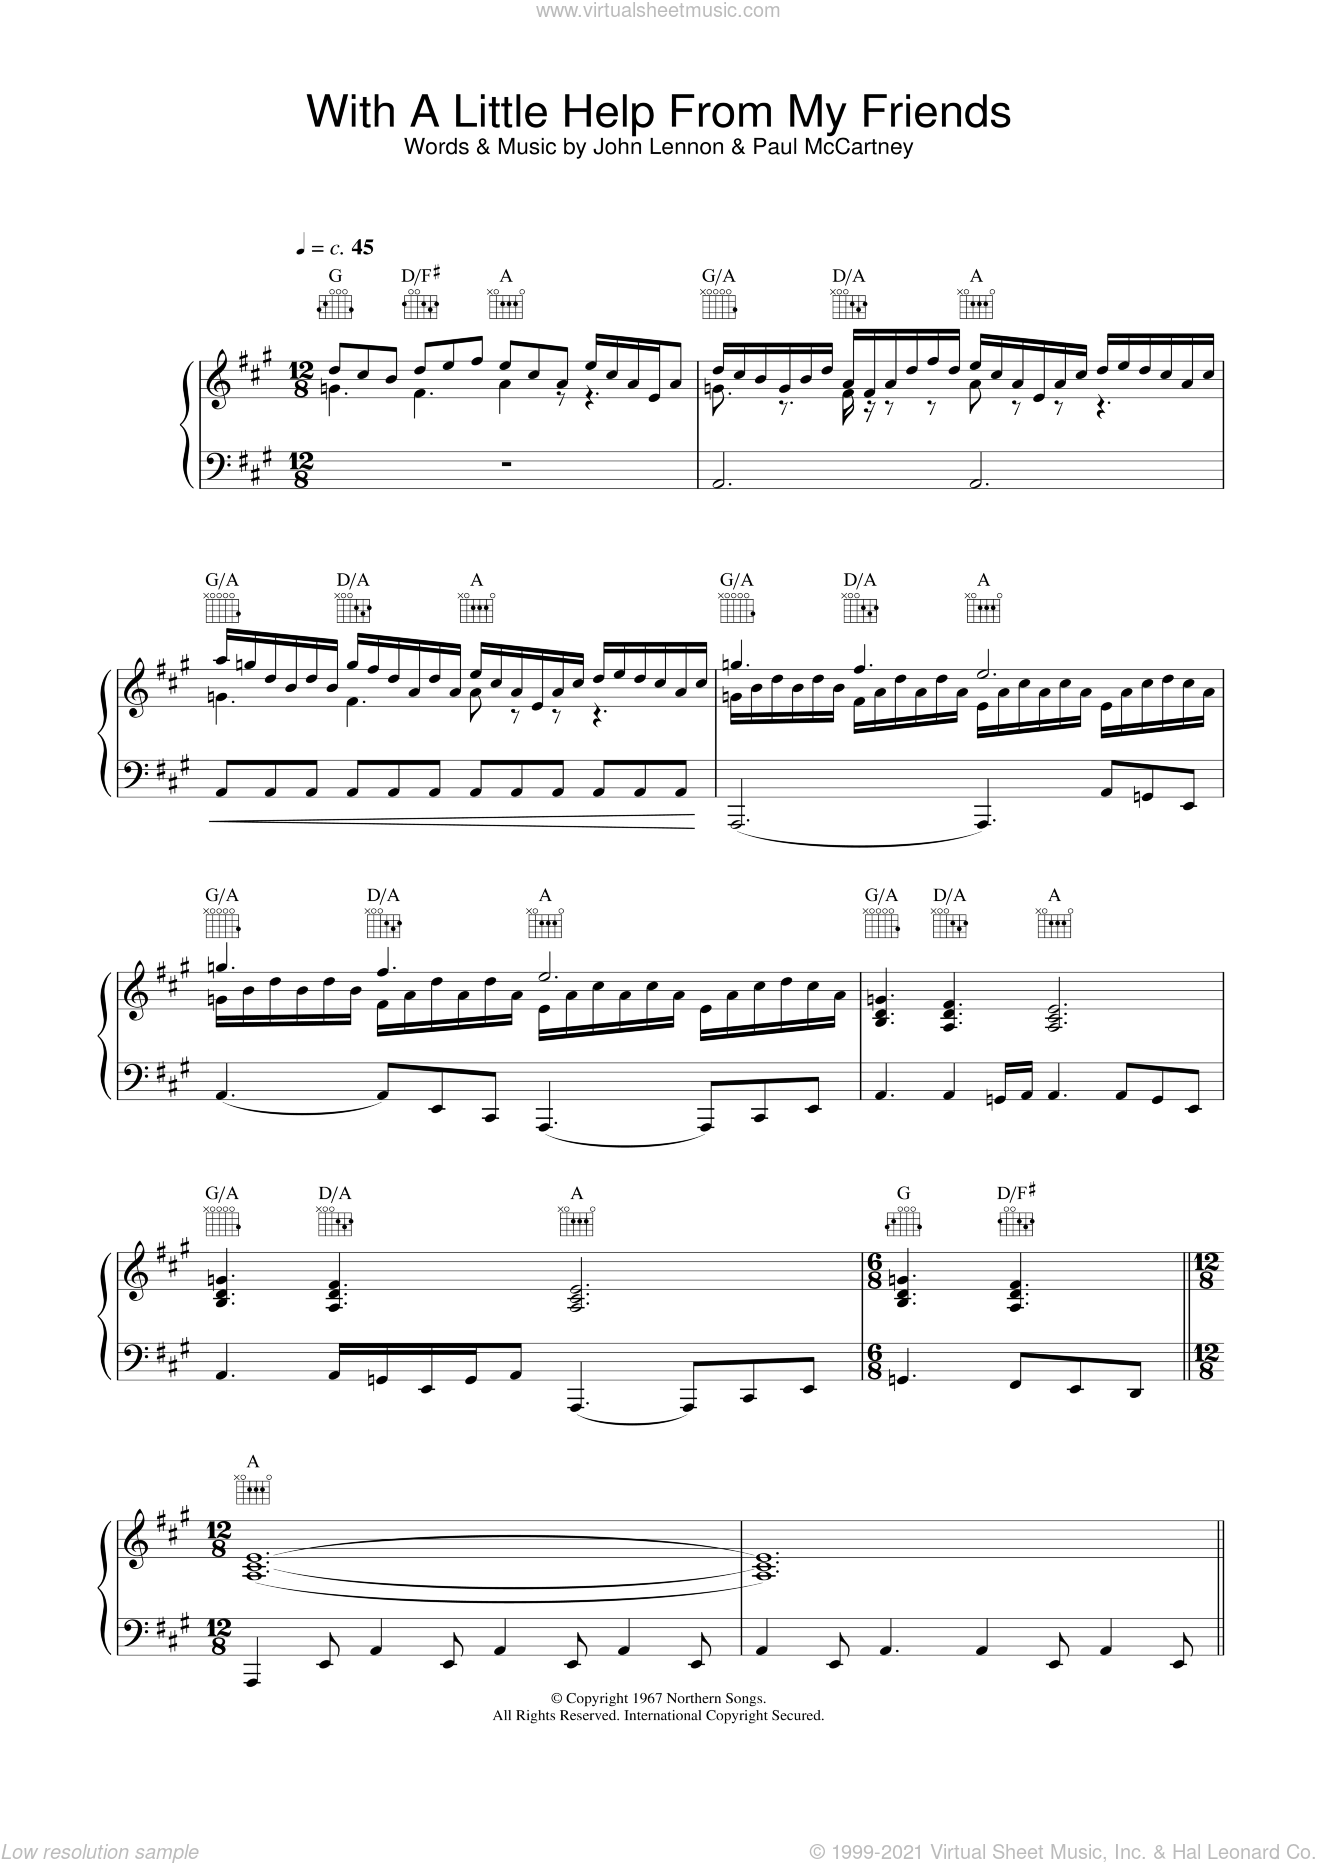 With A Little Help From My Friends sheet music for voice, piano or guitar by Joe Cocker